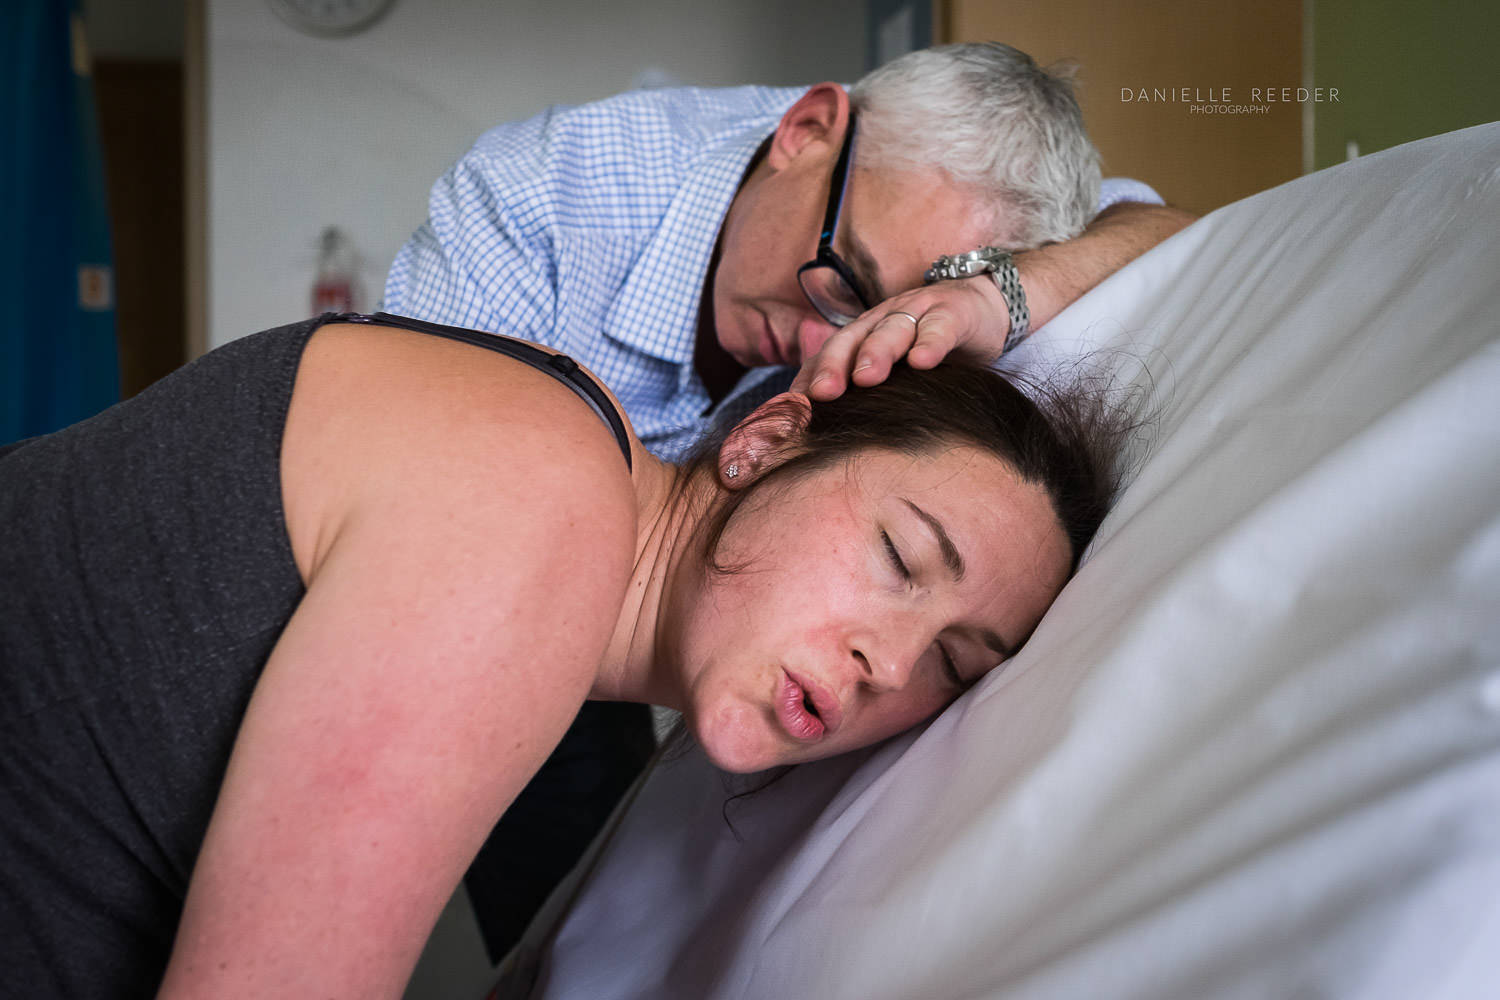 Labouring mother leaning into the back of the hospital bed, breathing out as she works through a contraction.